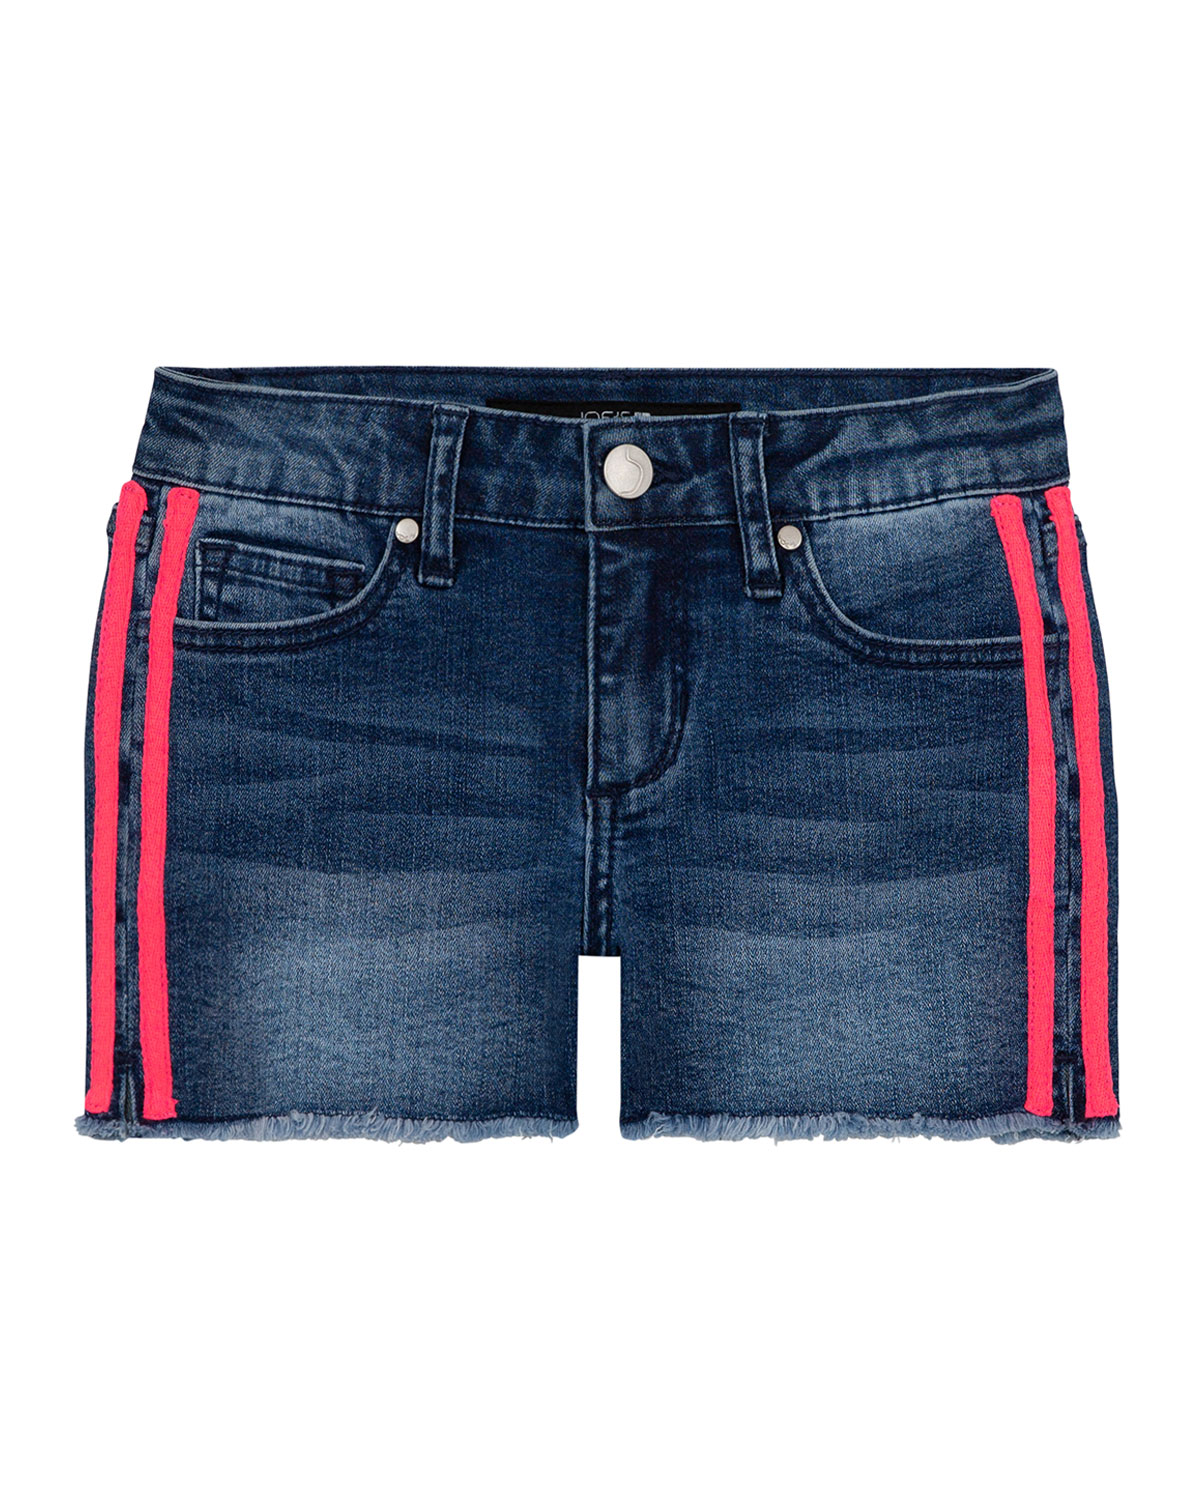 Joe's Jeans Girl's Neon Side-Tape Denim Shorts, Size 7-16